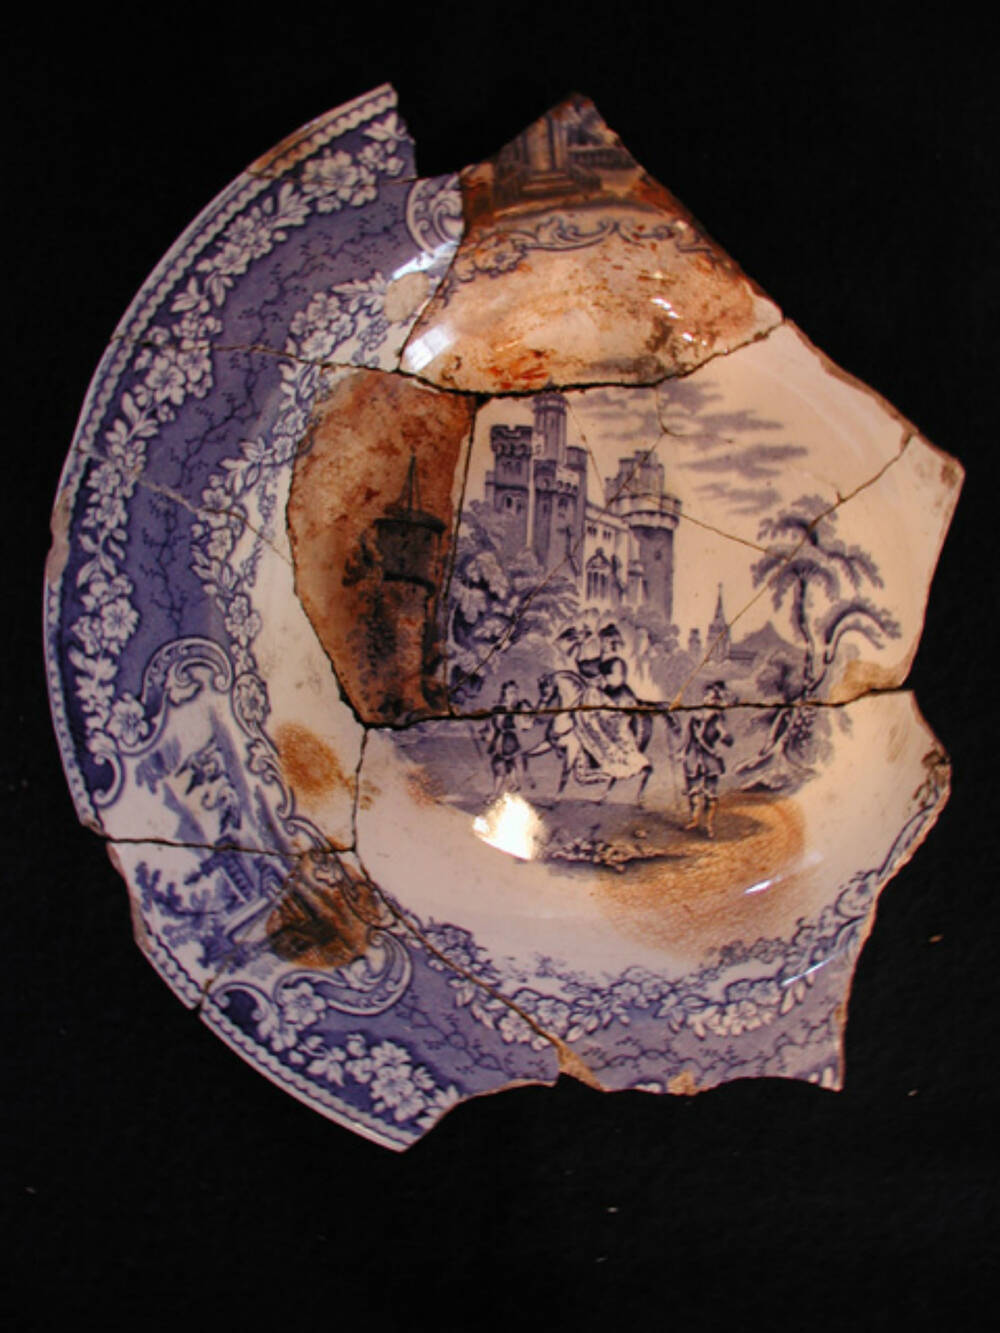 Blue and white transfer-decorated plate, 'Hawking' by Bell's Pottery, Glasgow